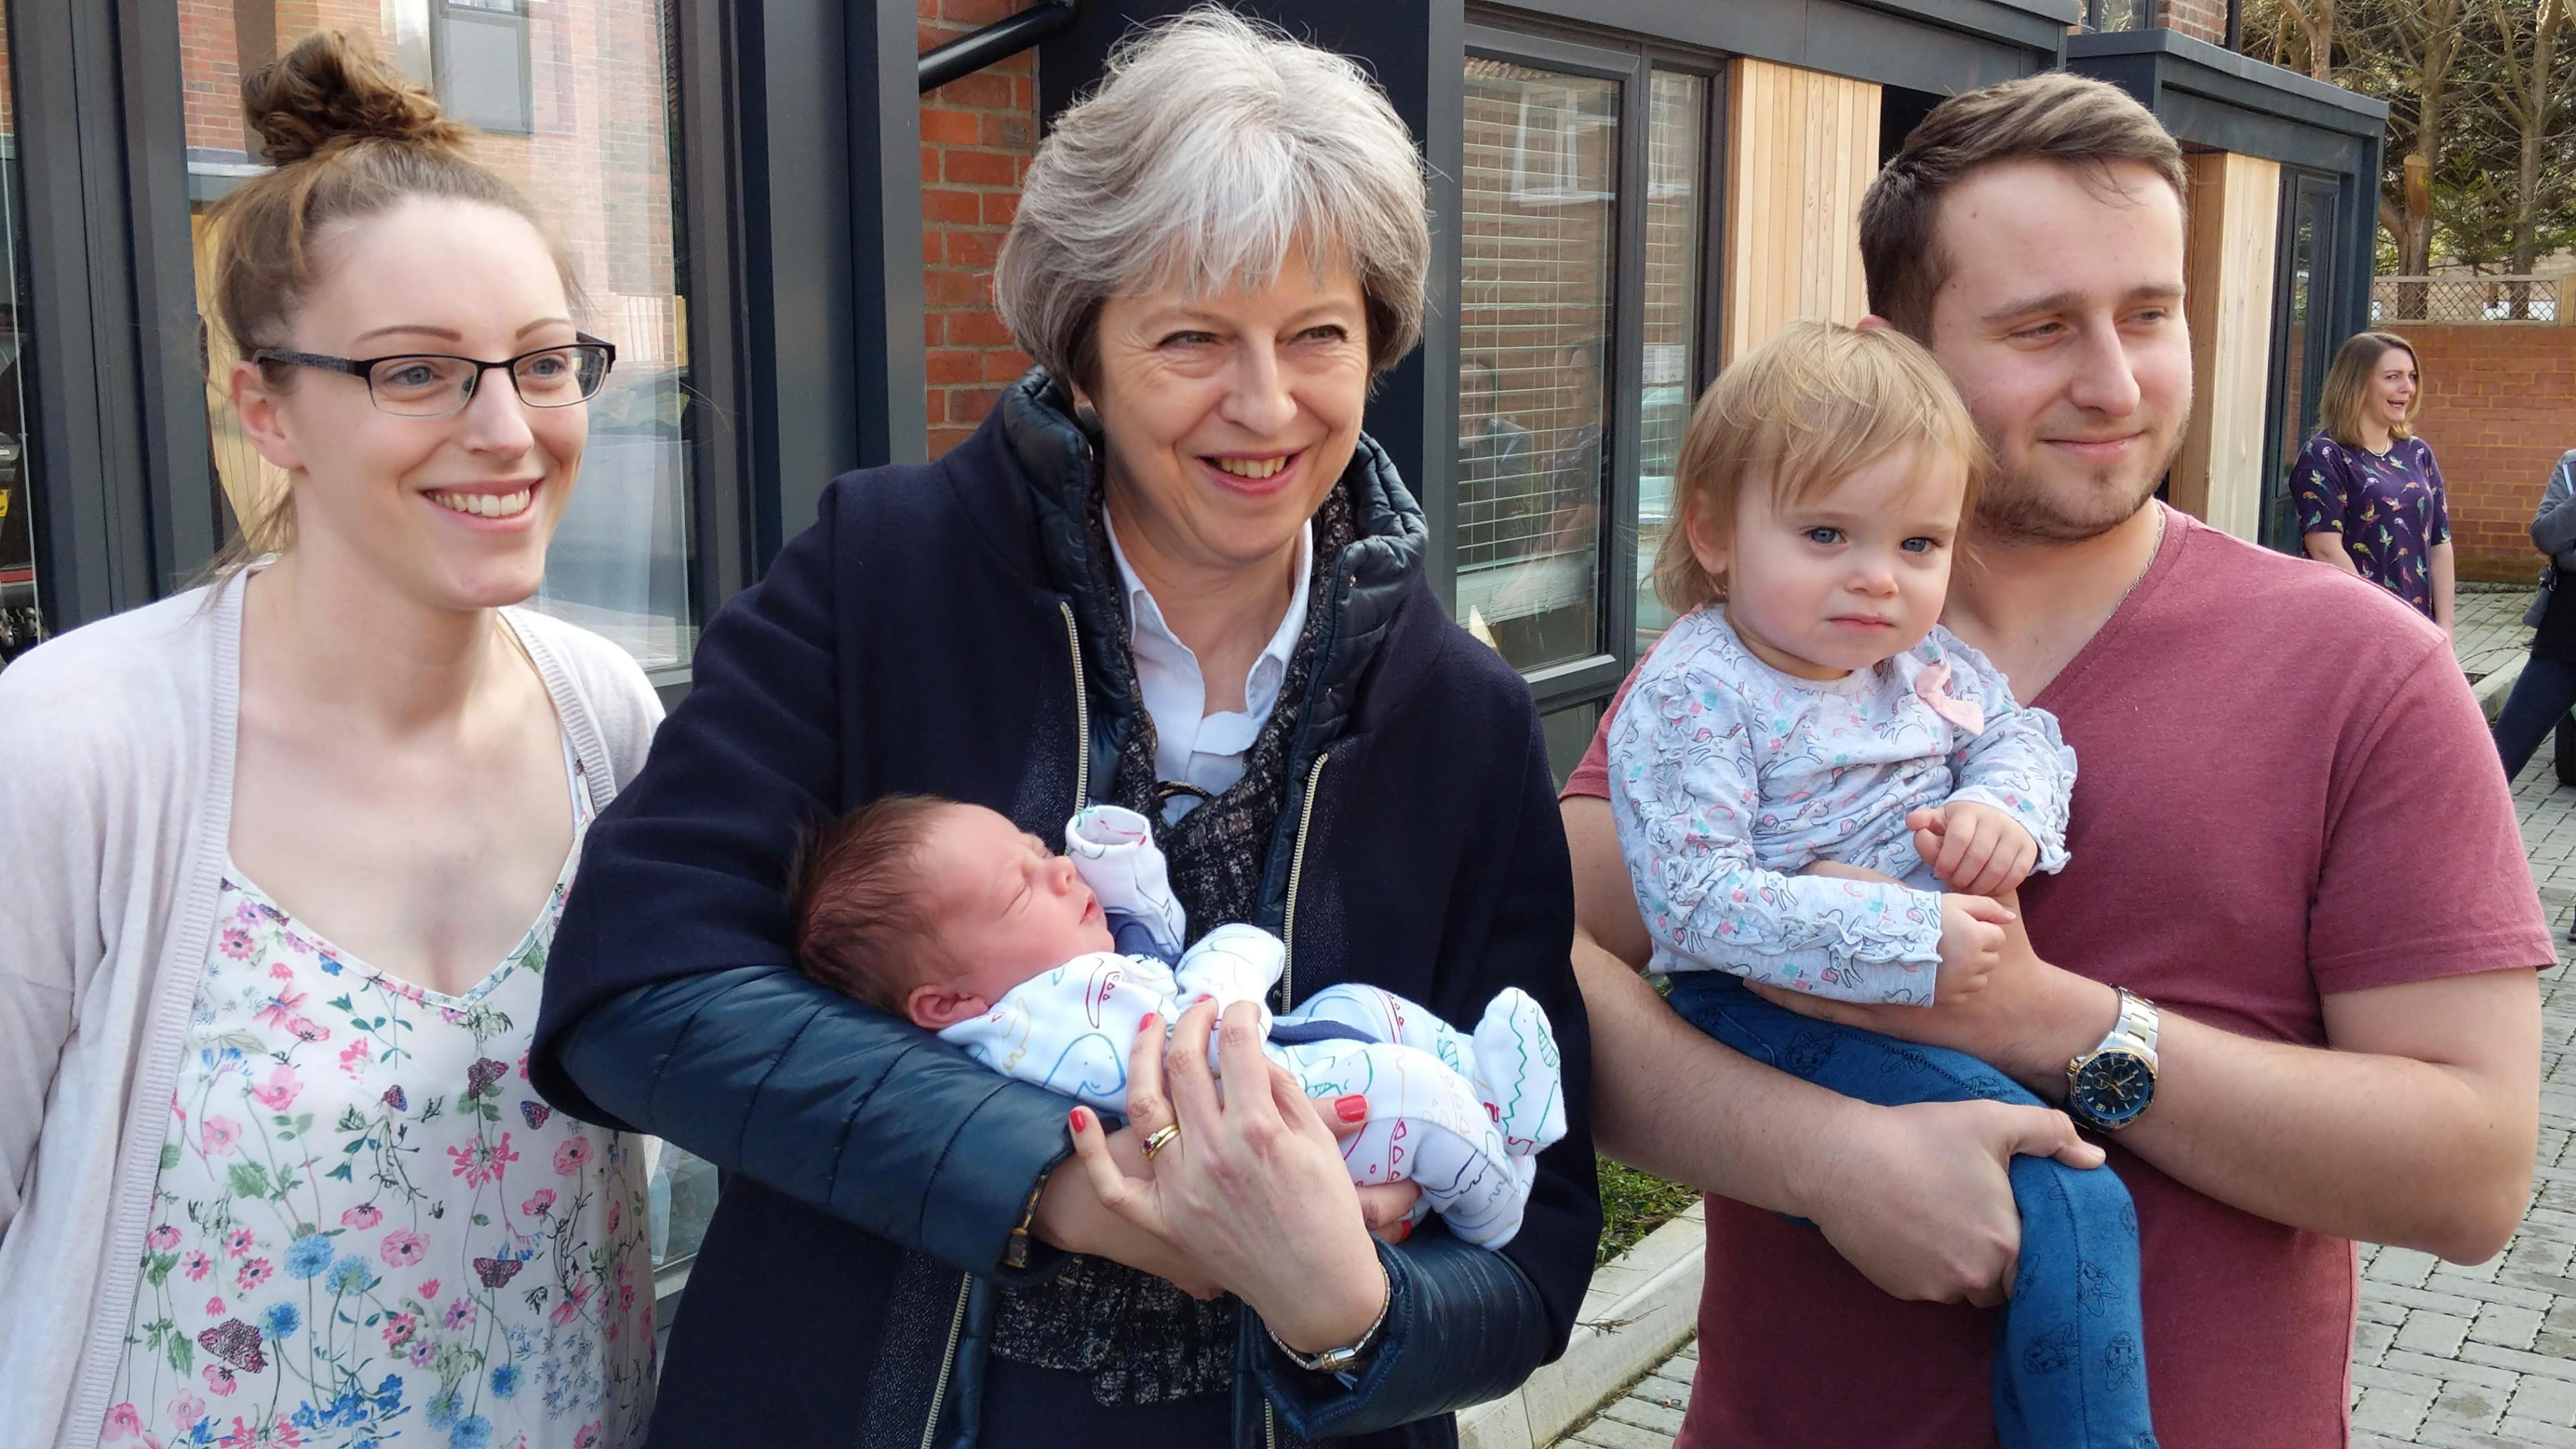 Theresa May continues to kill off the 'Maybot' with baby photo-op after fist-bumping voter in Salisbury as strong stance on Russia sees poll boost